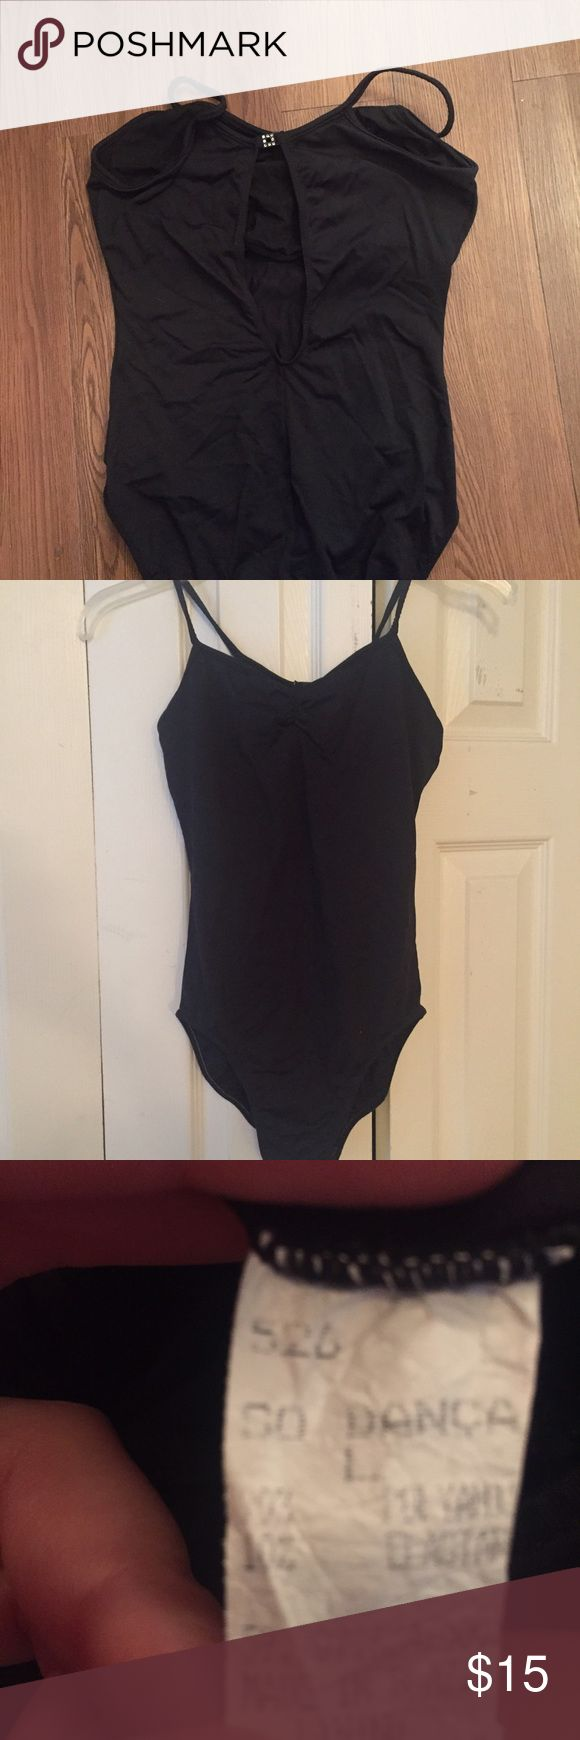 Gorgeous dance Leotard Black dance leotard with open back design. Size large. Ballet and jazz shoes for sale in separate listings. So Danza Other